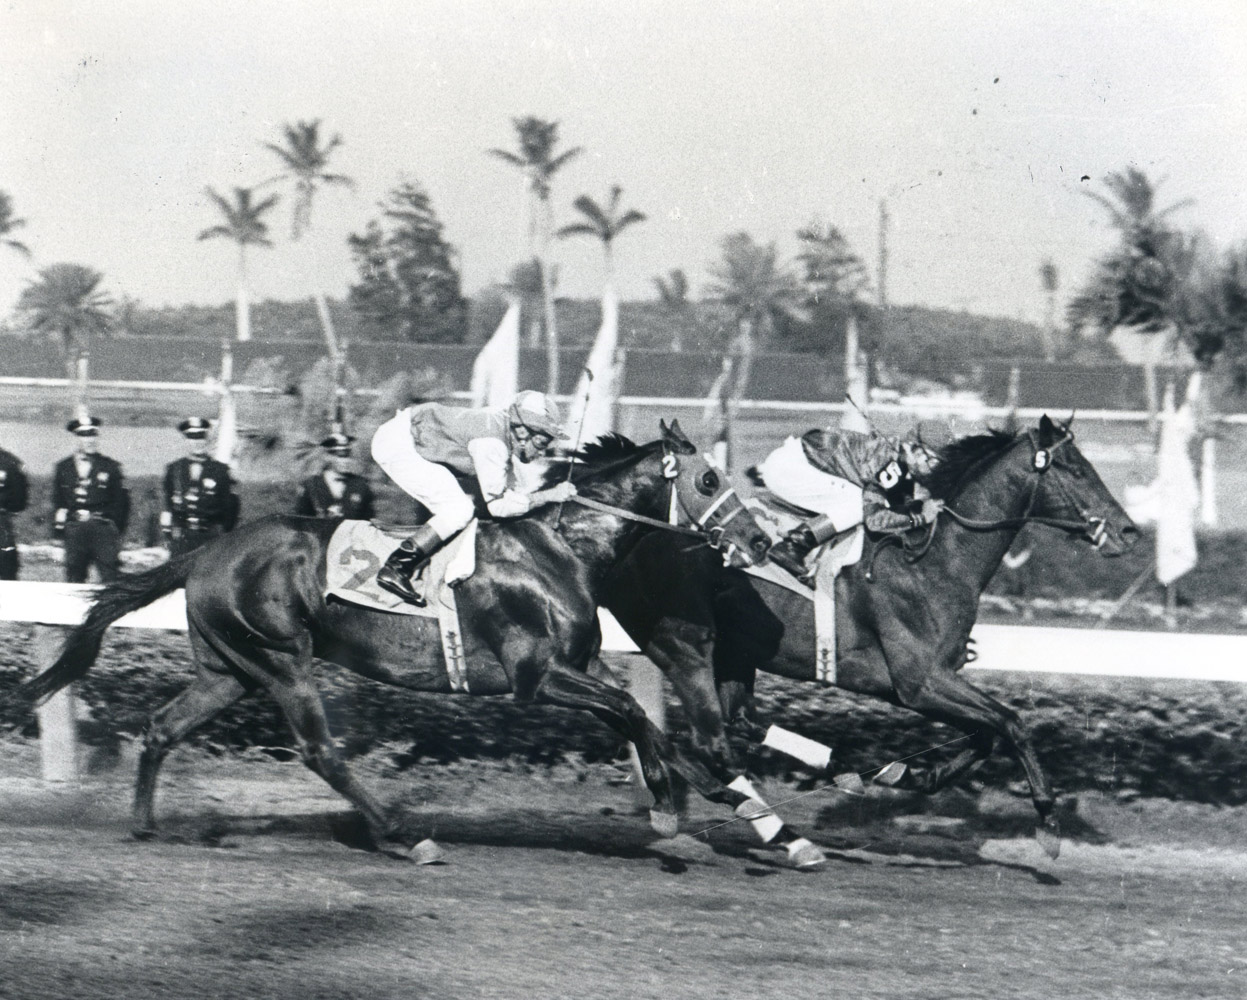 Bill Hartack and Tim Tam winning the 1958 Florida Derby at Gulfstream Park (Jim Raftery Turfotos/Museum Collection)